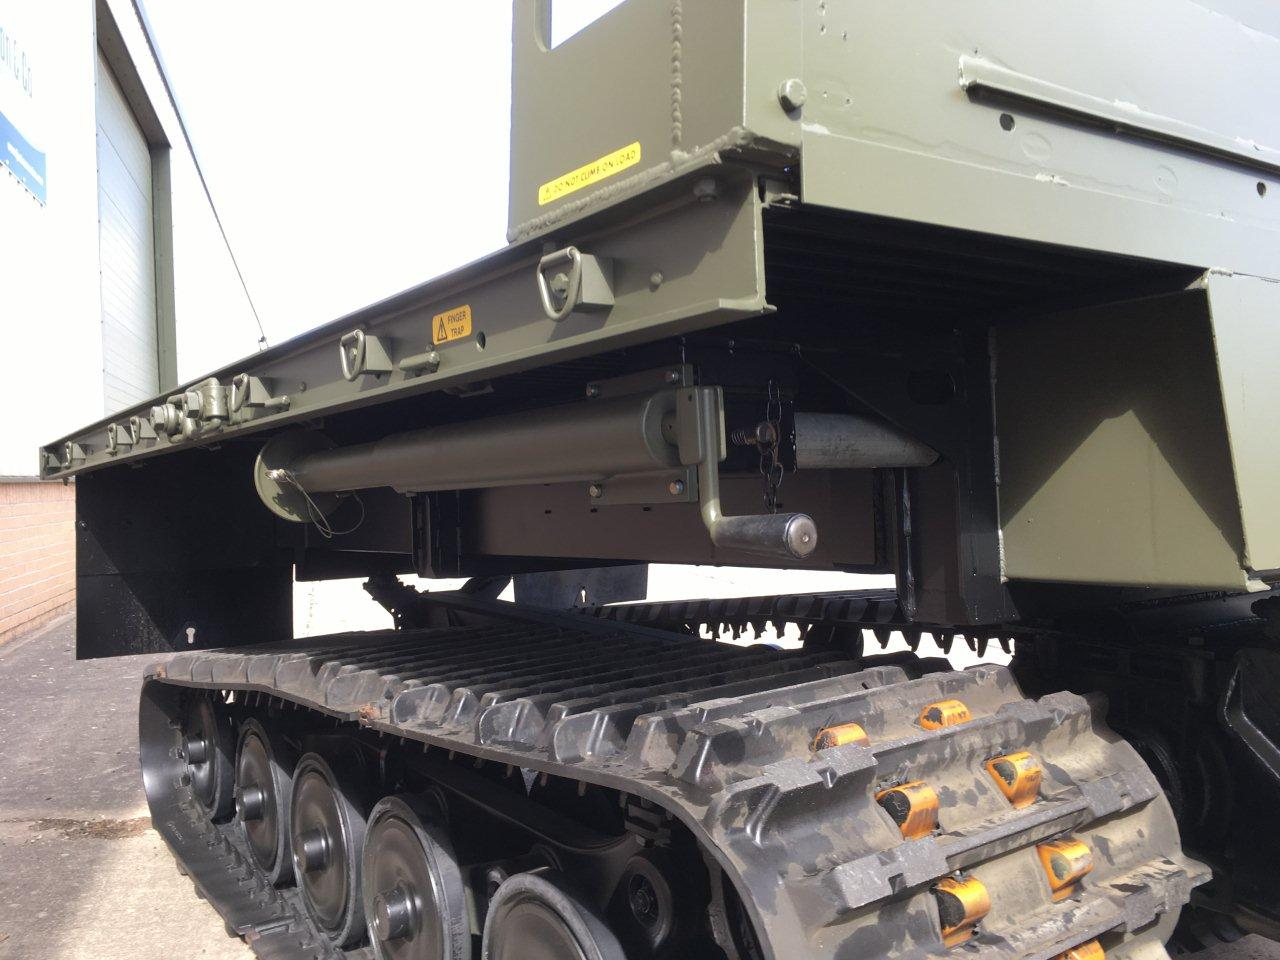 Hagglunds Bv206 Load Carrier with Crane | used military vehicles, MOD surplus for sale